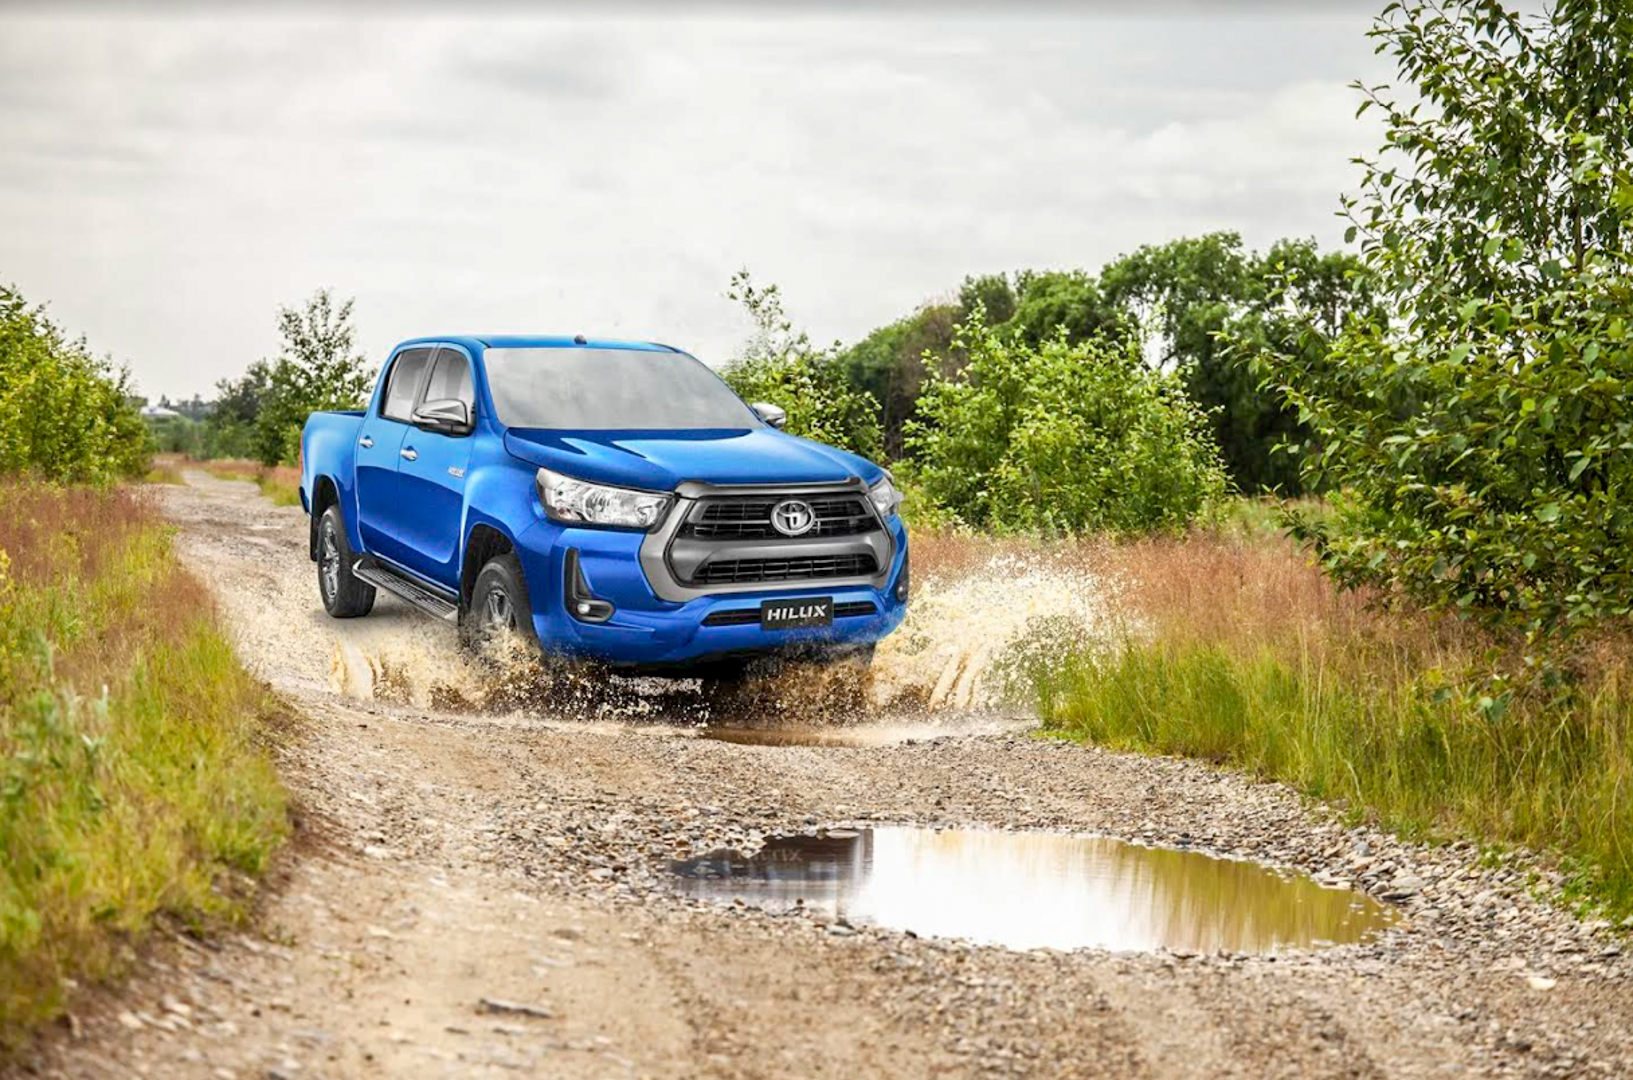 Powered by passion and grit: the Toyota Hilux is ready to conquer every course